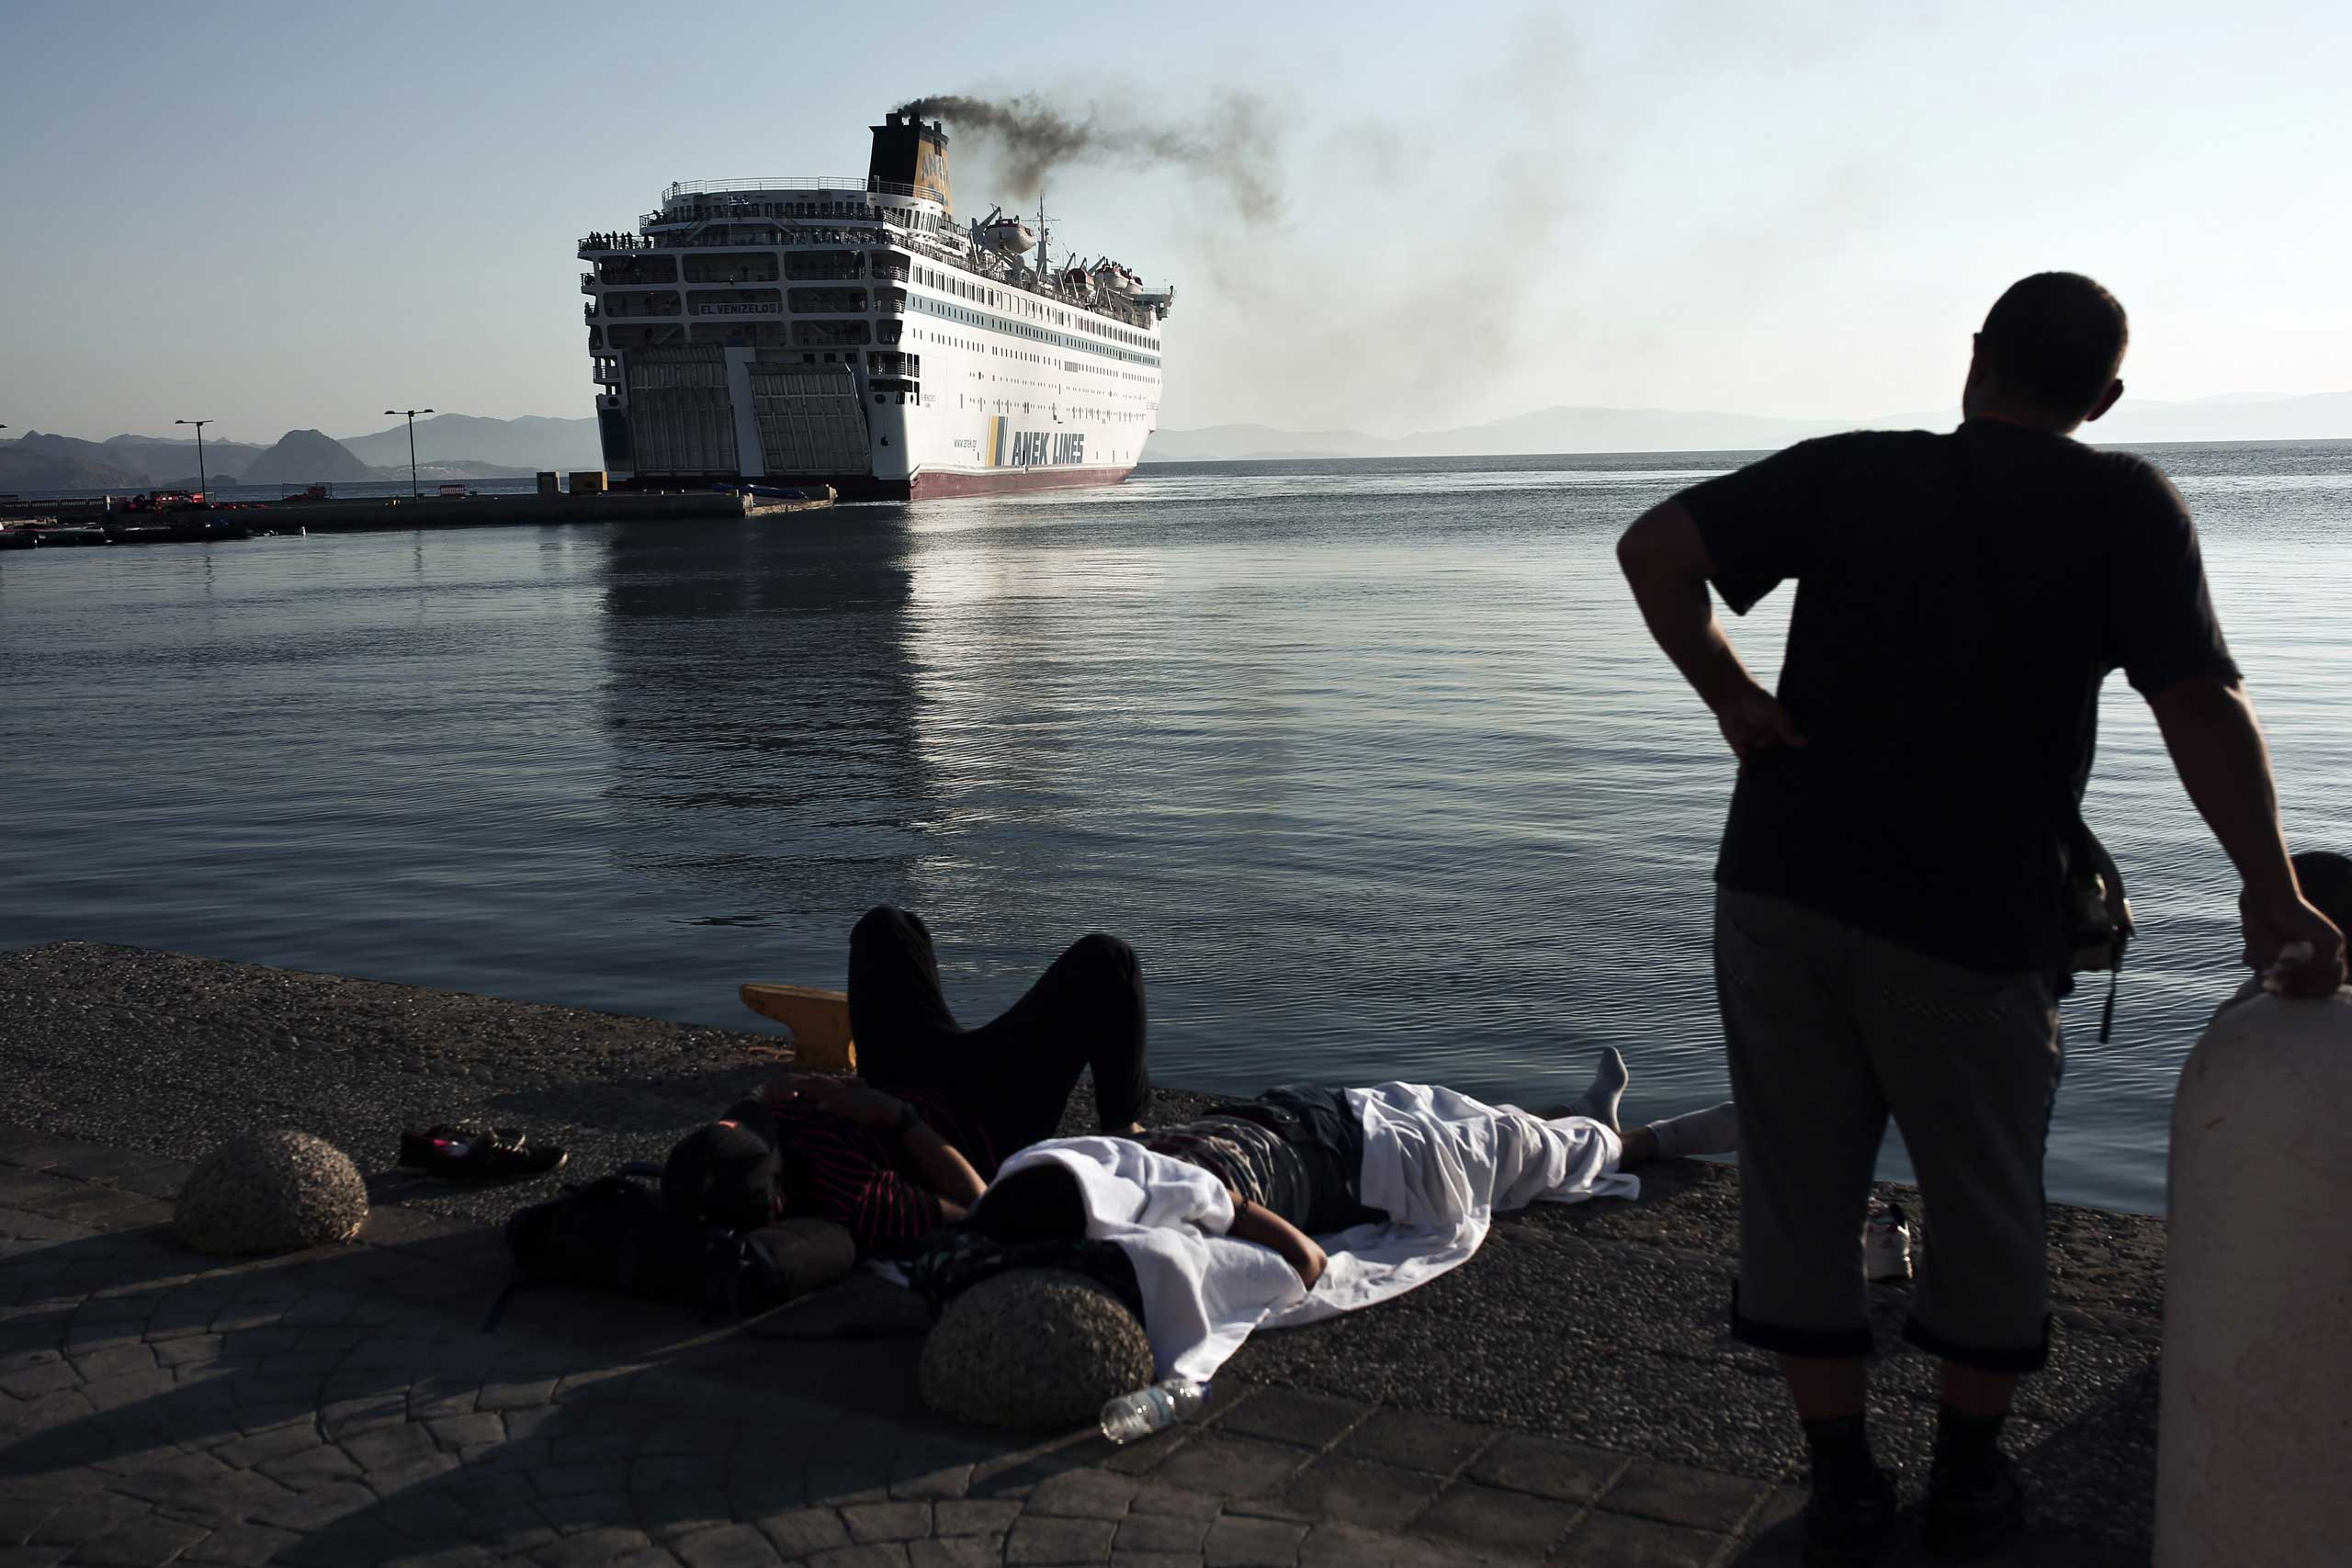 A migrant looks at the passenger ship  Eleftherios Venizelos  leaving the port of the Greek island of Kos, Aug. 19, 2015.